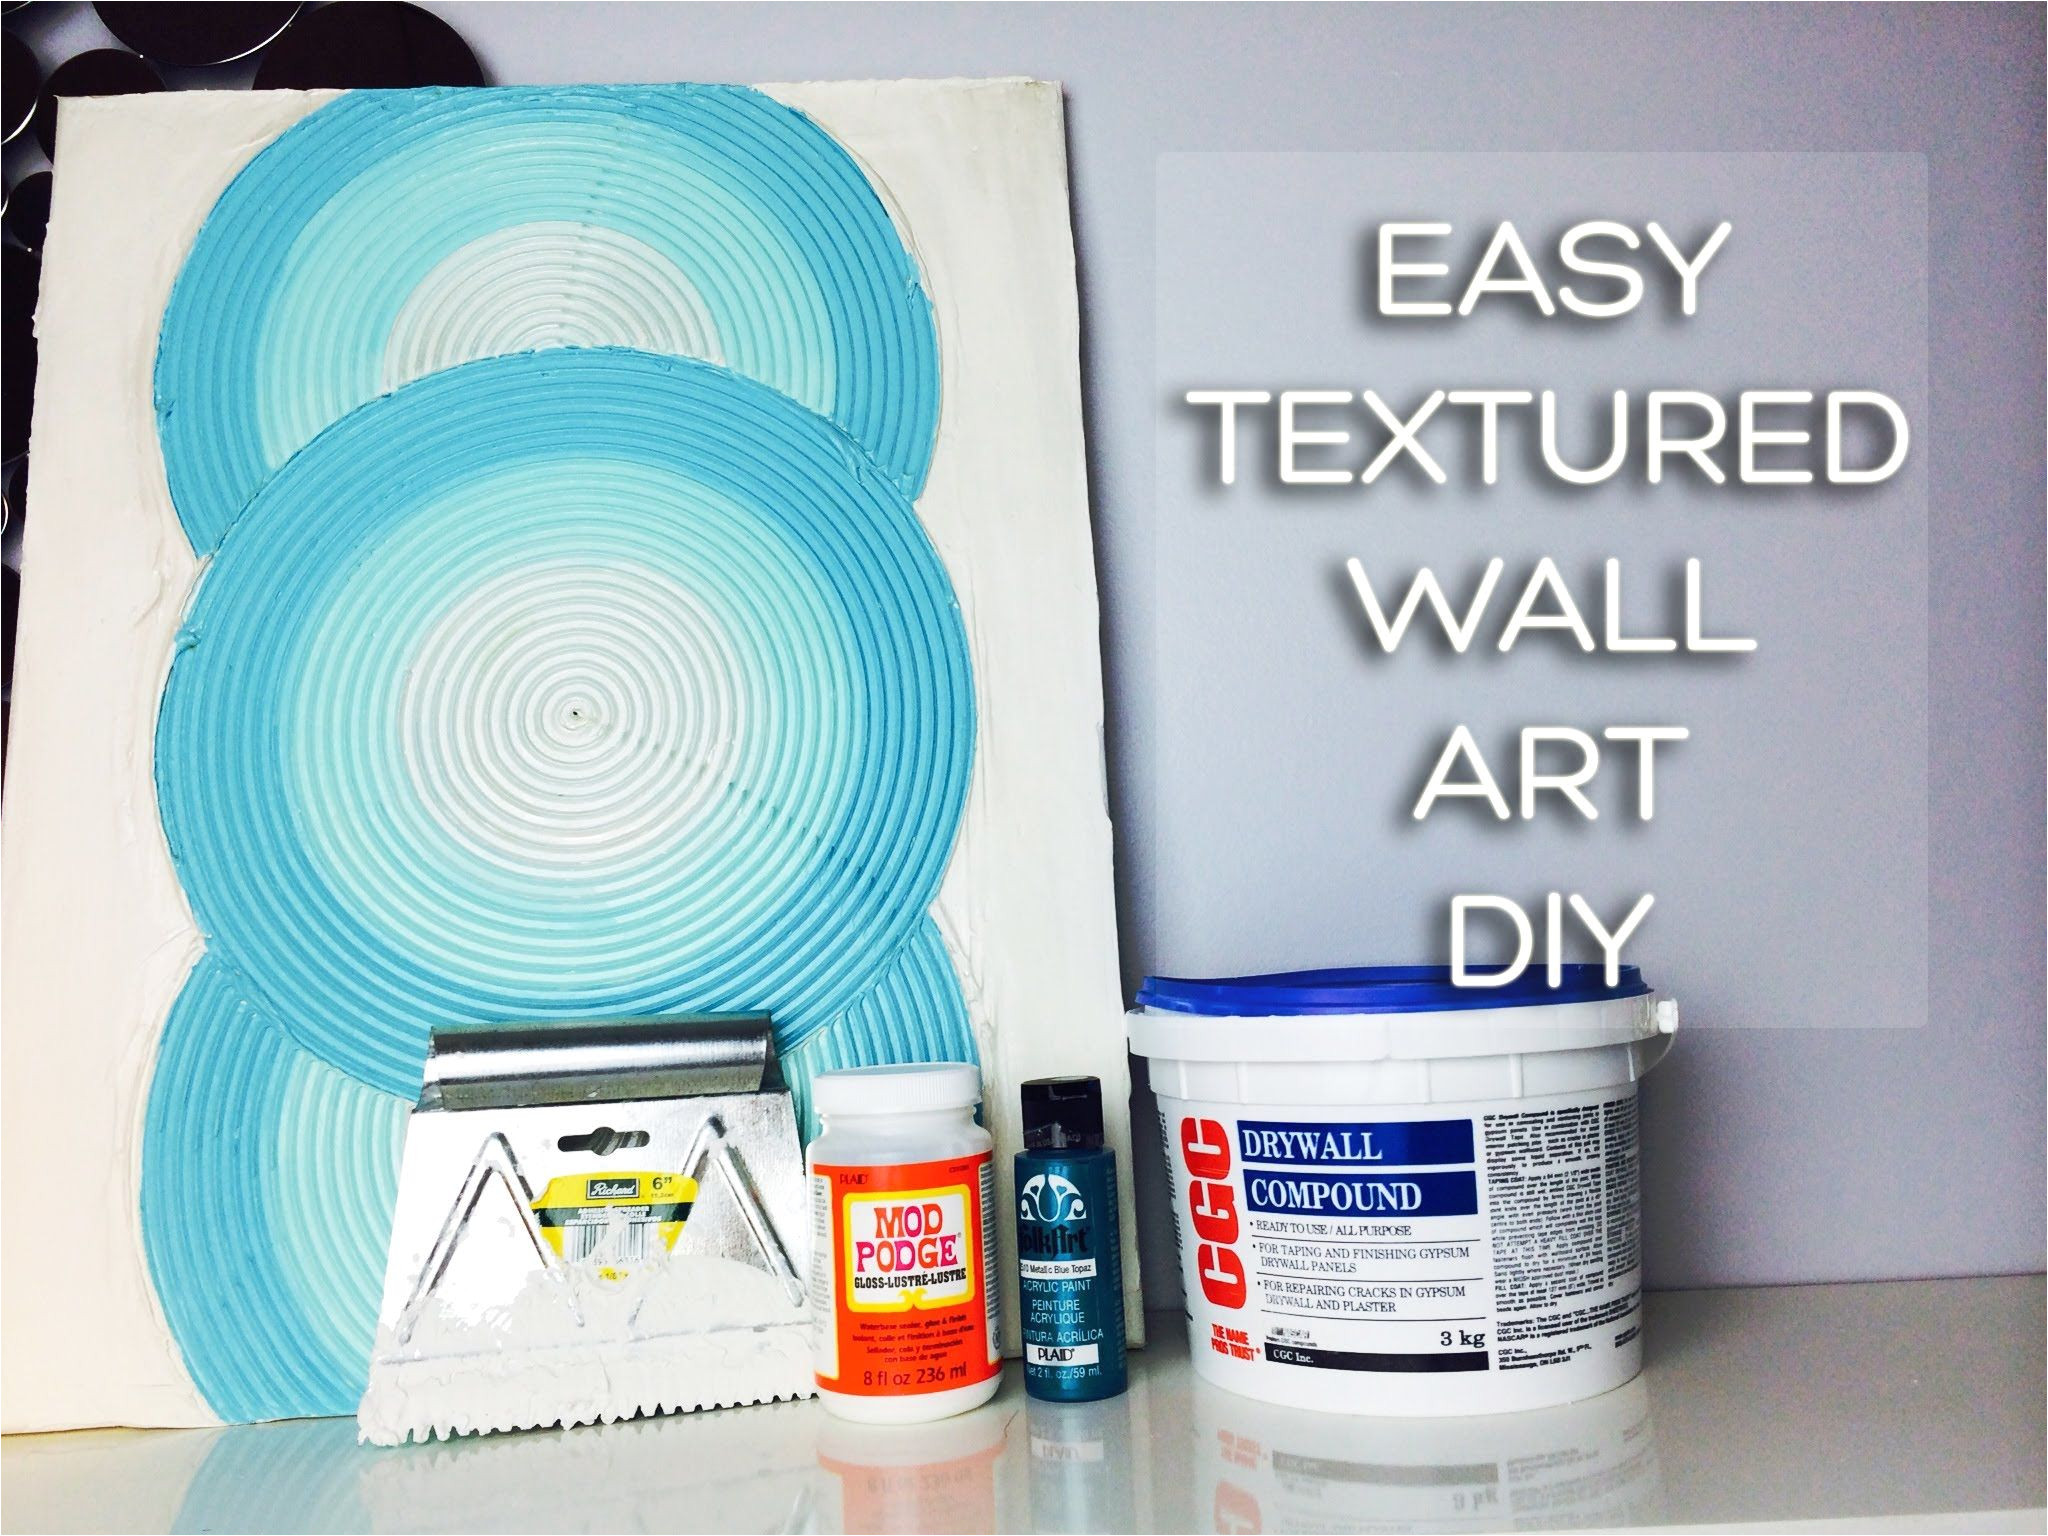 try a new medium drywall mud can be used on canvas or walls check out these tips drywallmud artistmediums clay www onemorepress com